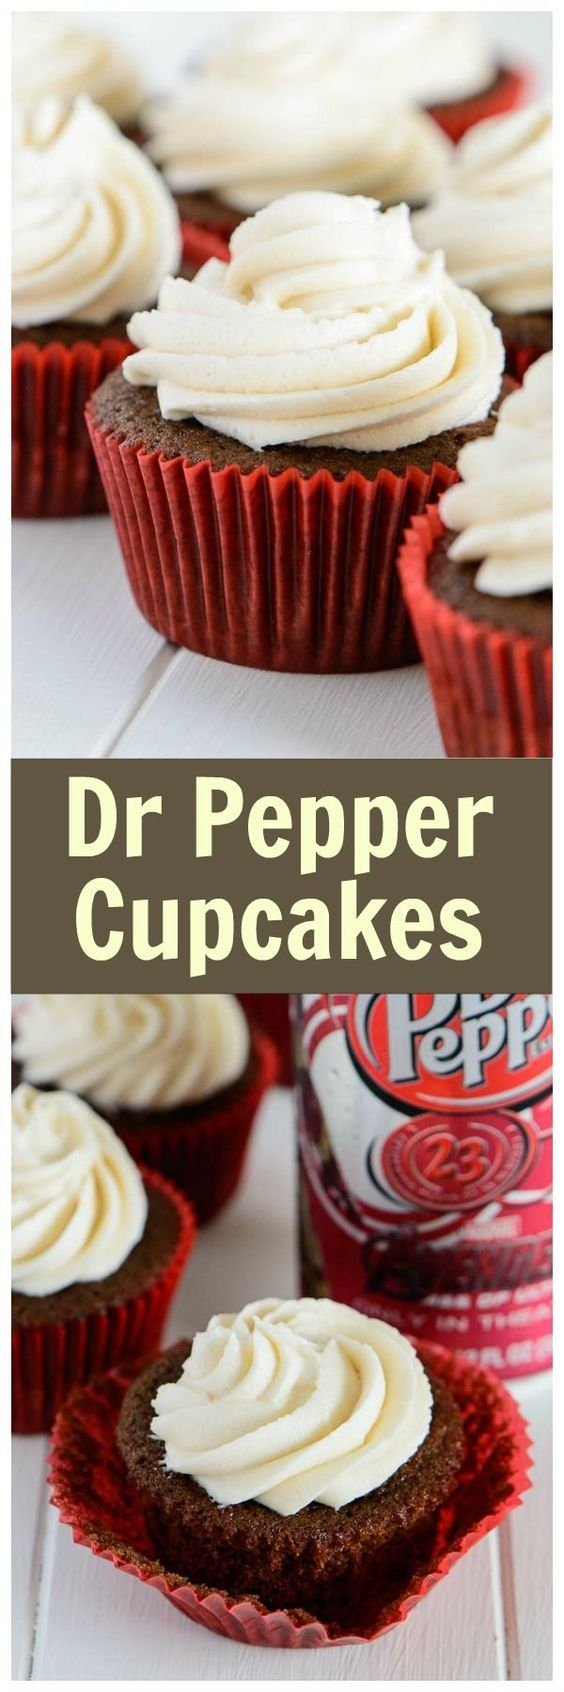 Fluffy and moist, these dr pepper cupcakes are my absolute favorite. The brown butter frosting takes them to a whole new level!   bakedbyanintrovert.com